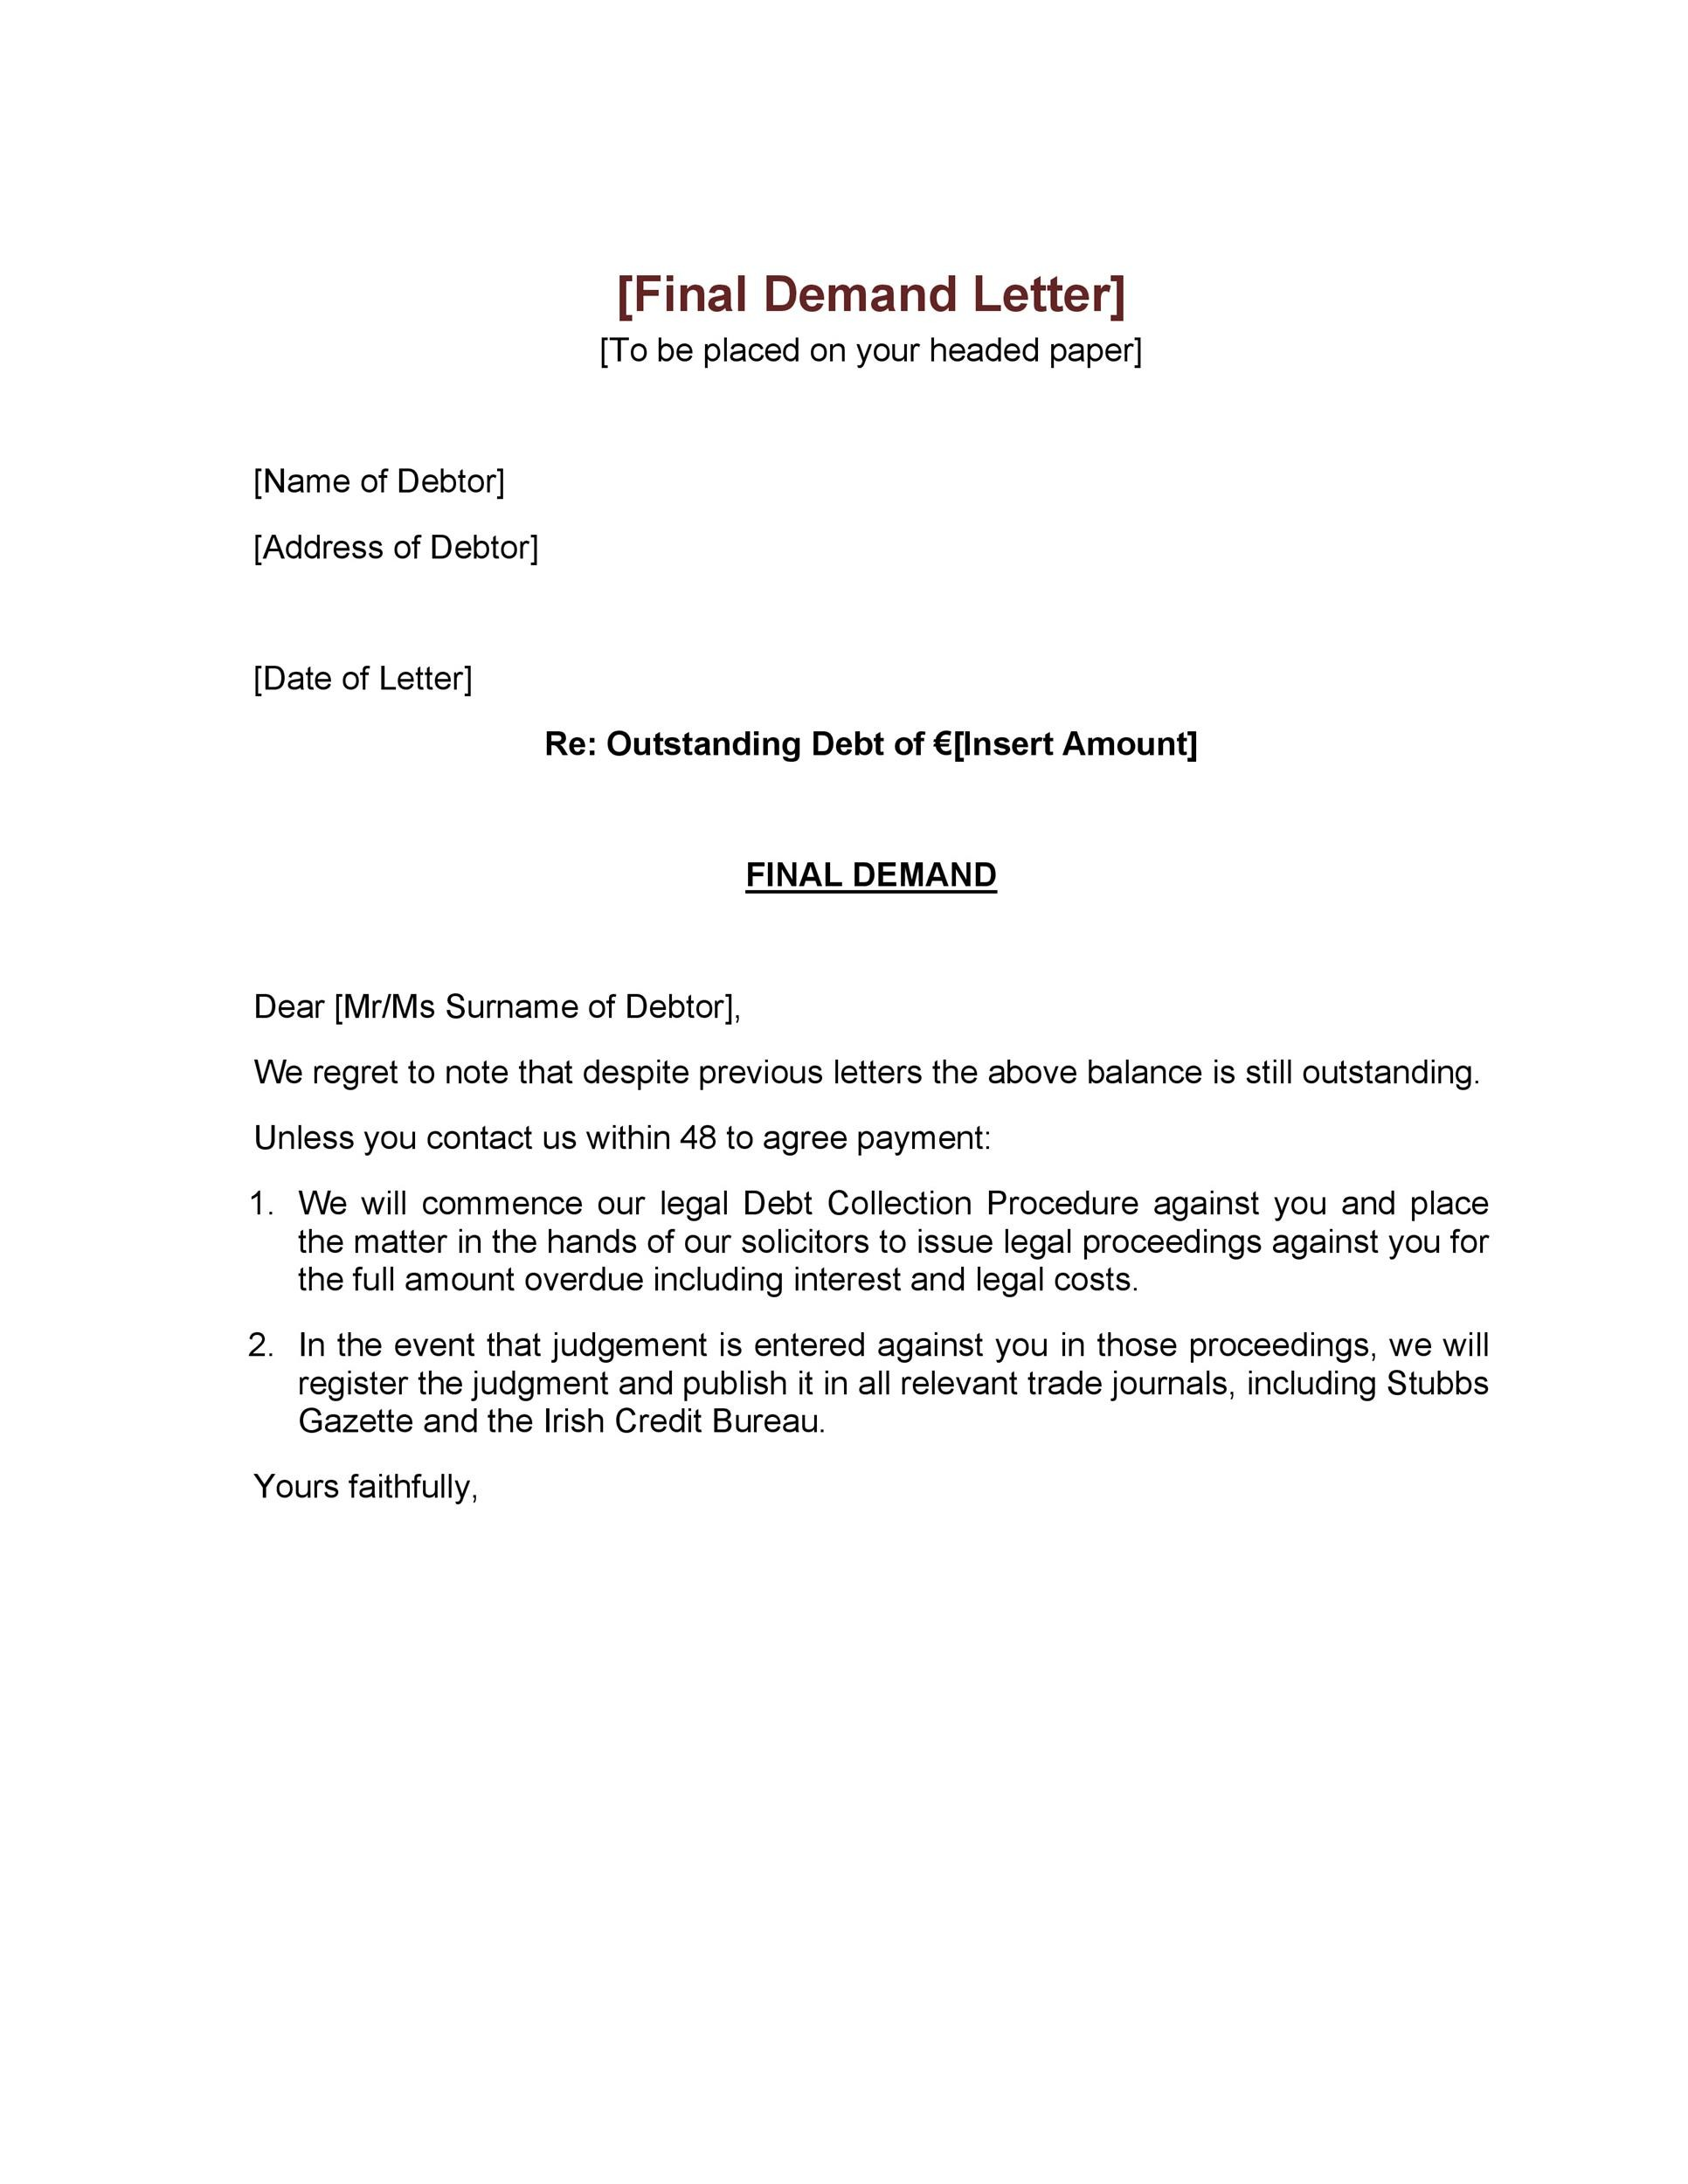 Demand Letter Templates